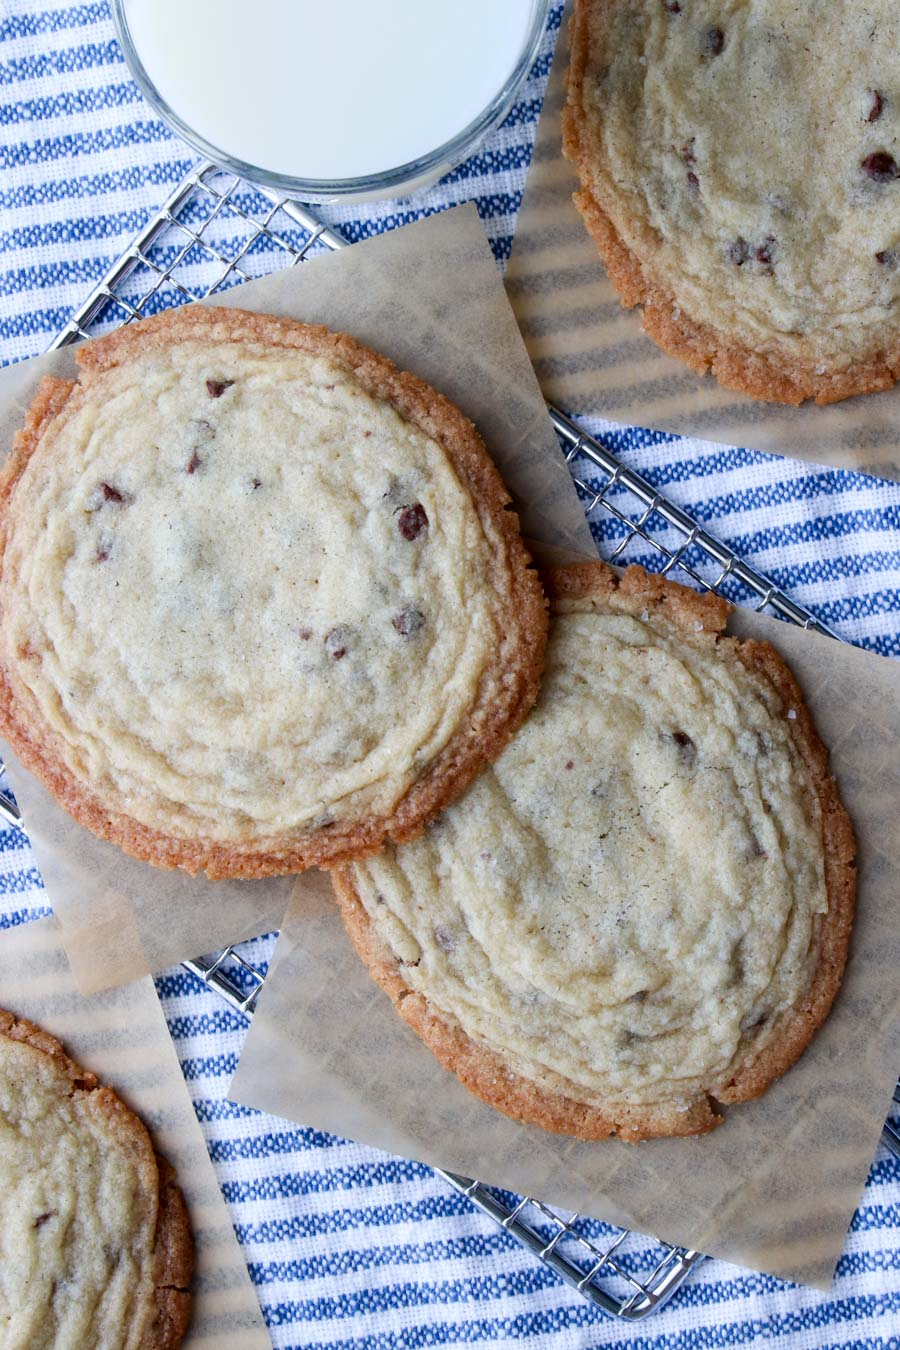 Giant chocolate chip cookies with a glass of milk on the side